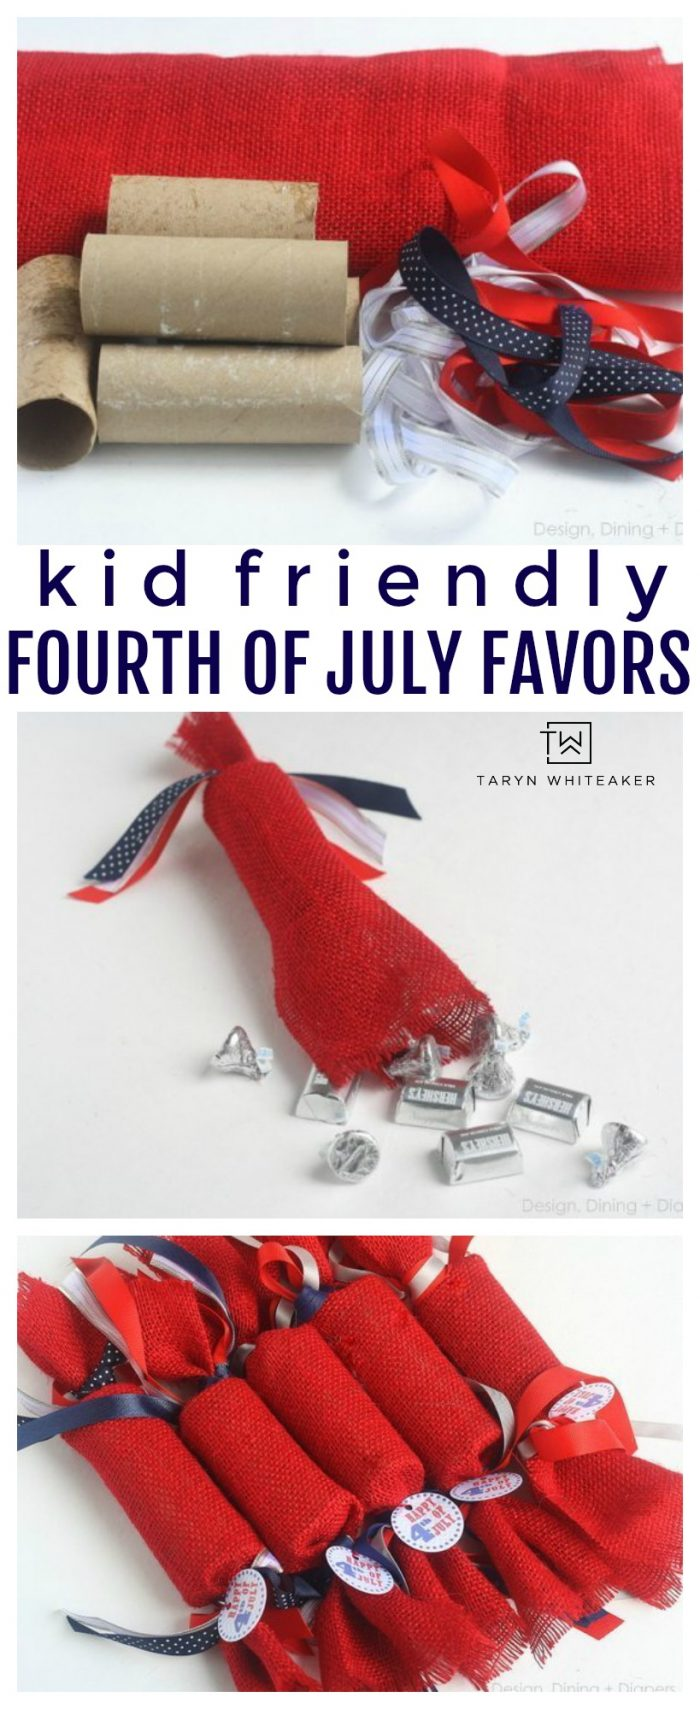 Make these easy Fourth of July Party Favors for your festivities! These are kid friendly party favors made from recycled tp rolls! Cute, easy and inexpensive.